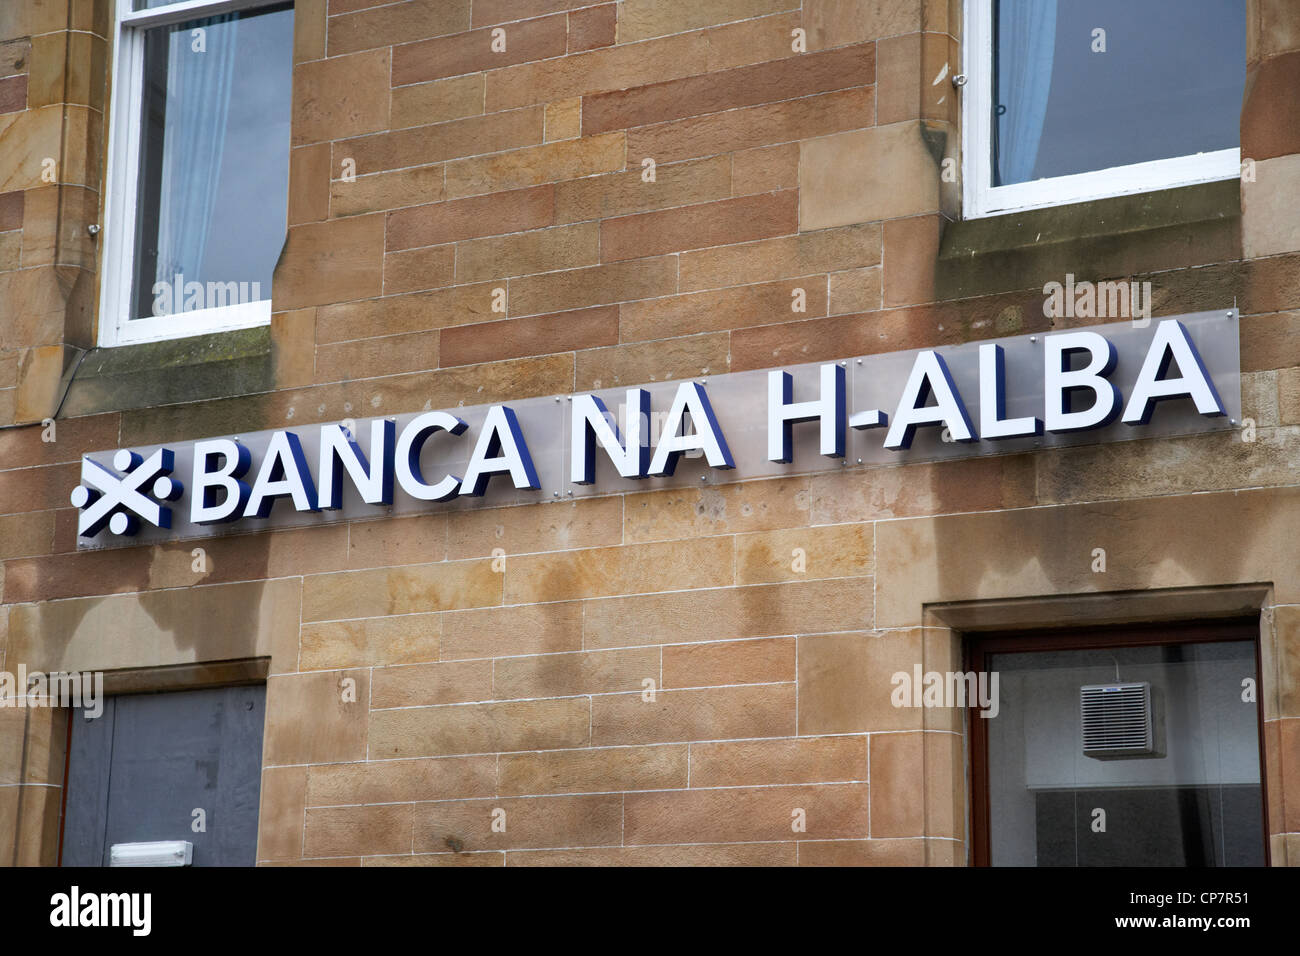 scots gaelic name of the bank of scotland branch in fort william Scotland UK - Stock Image